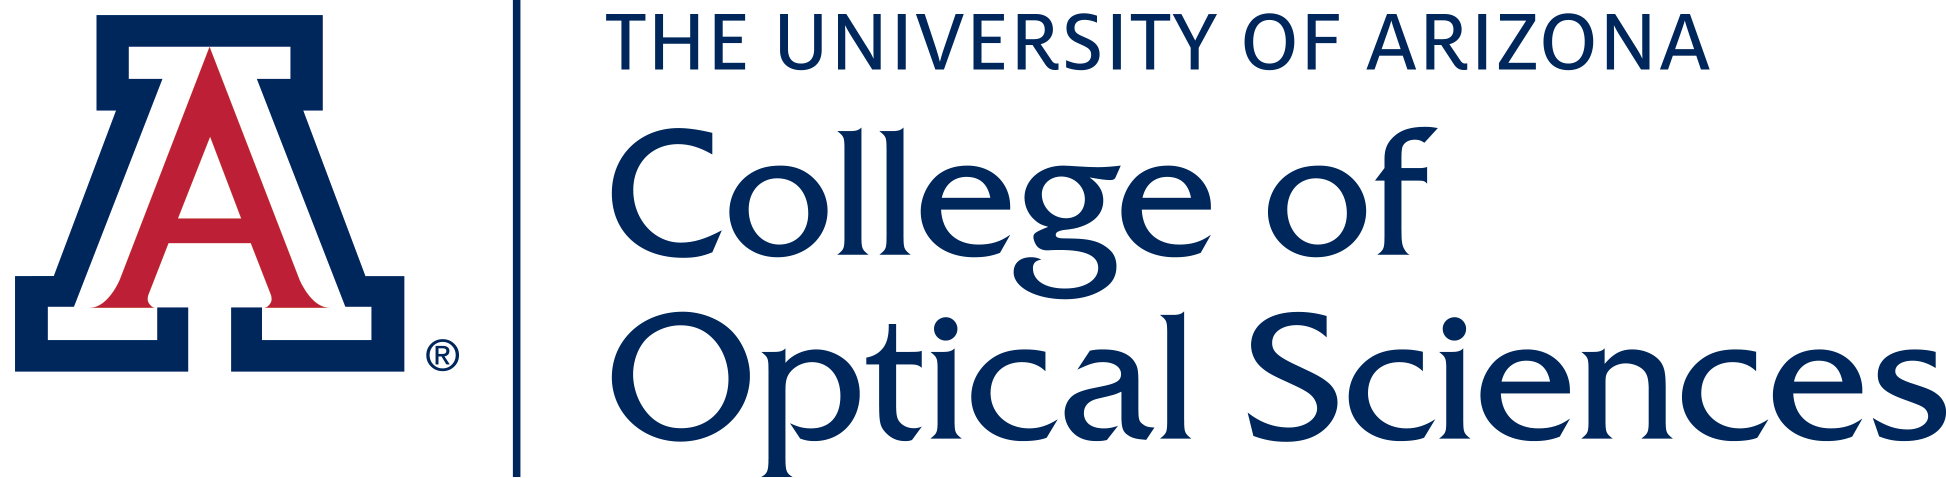 arizona college of optical sciences